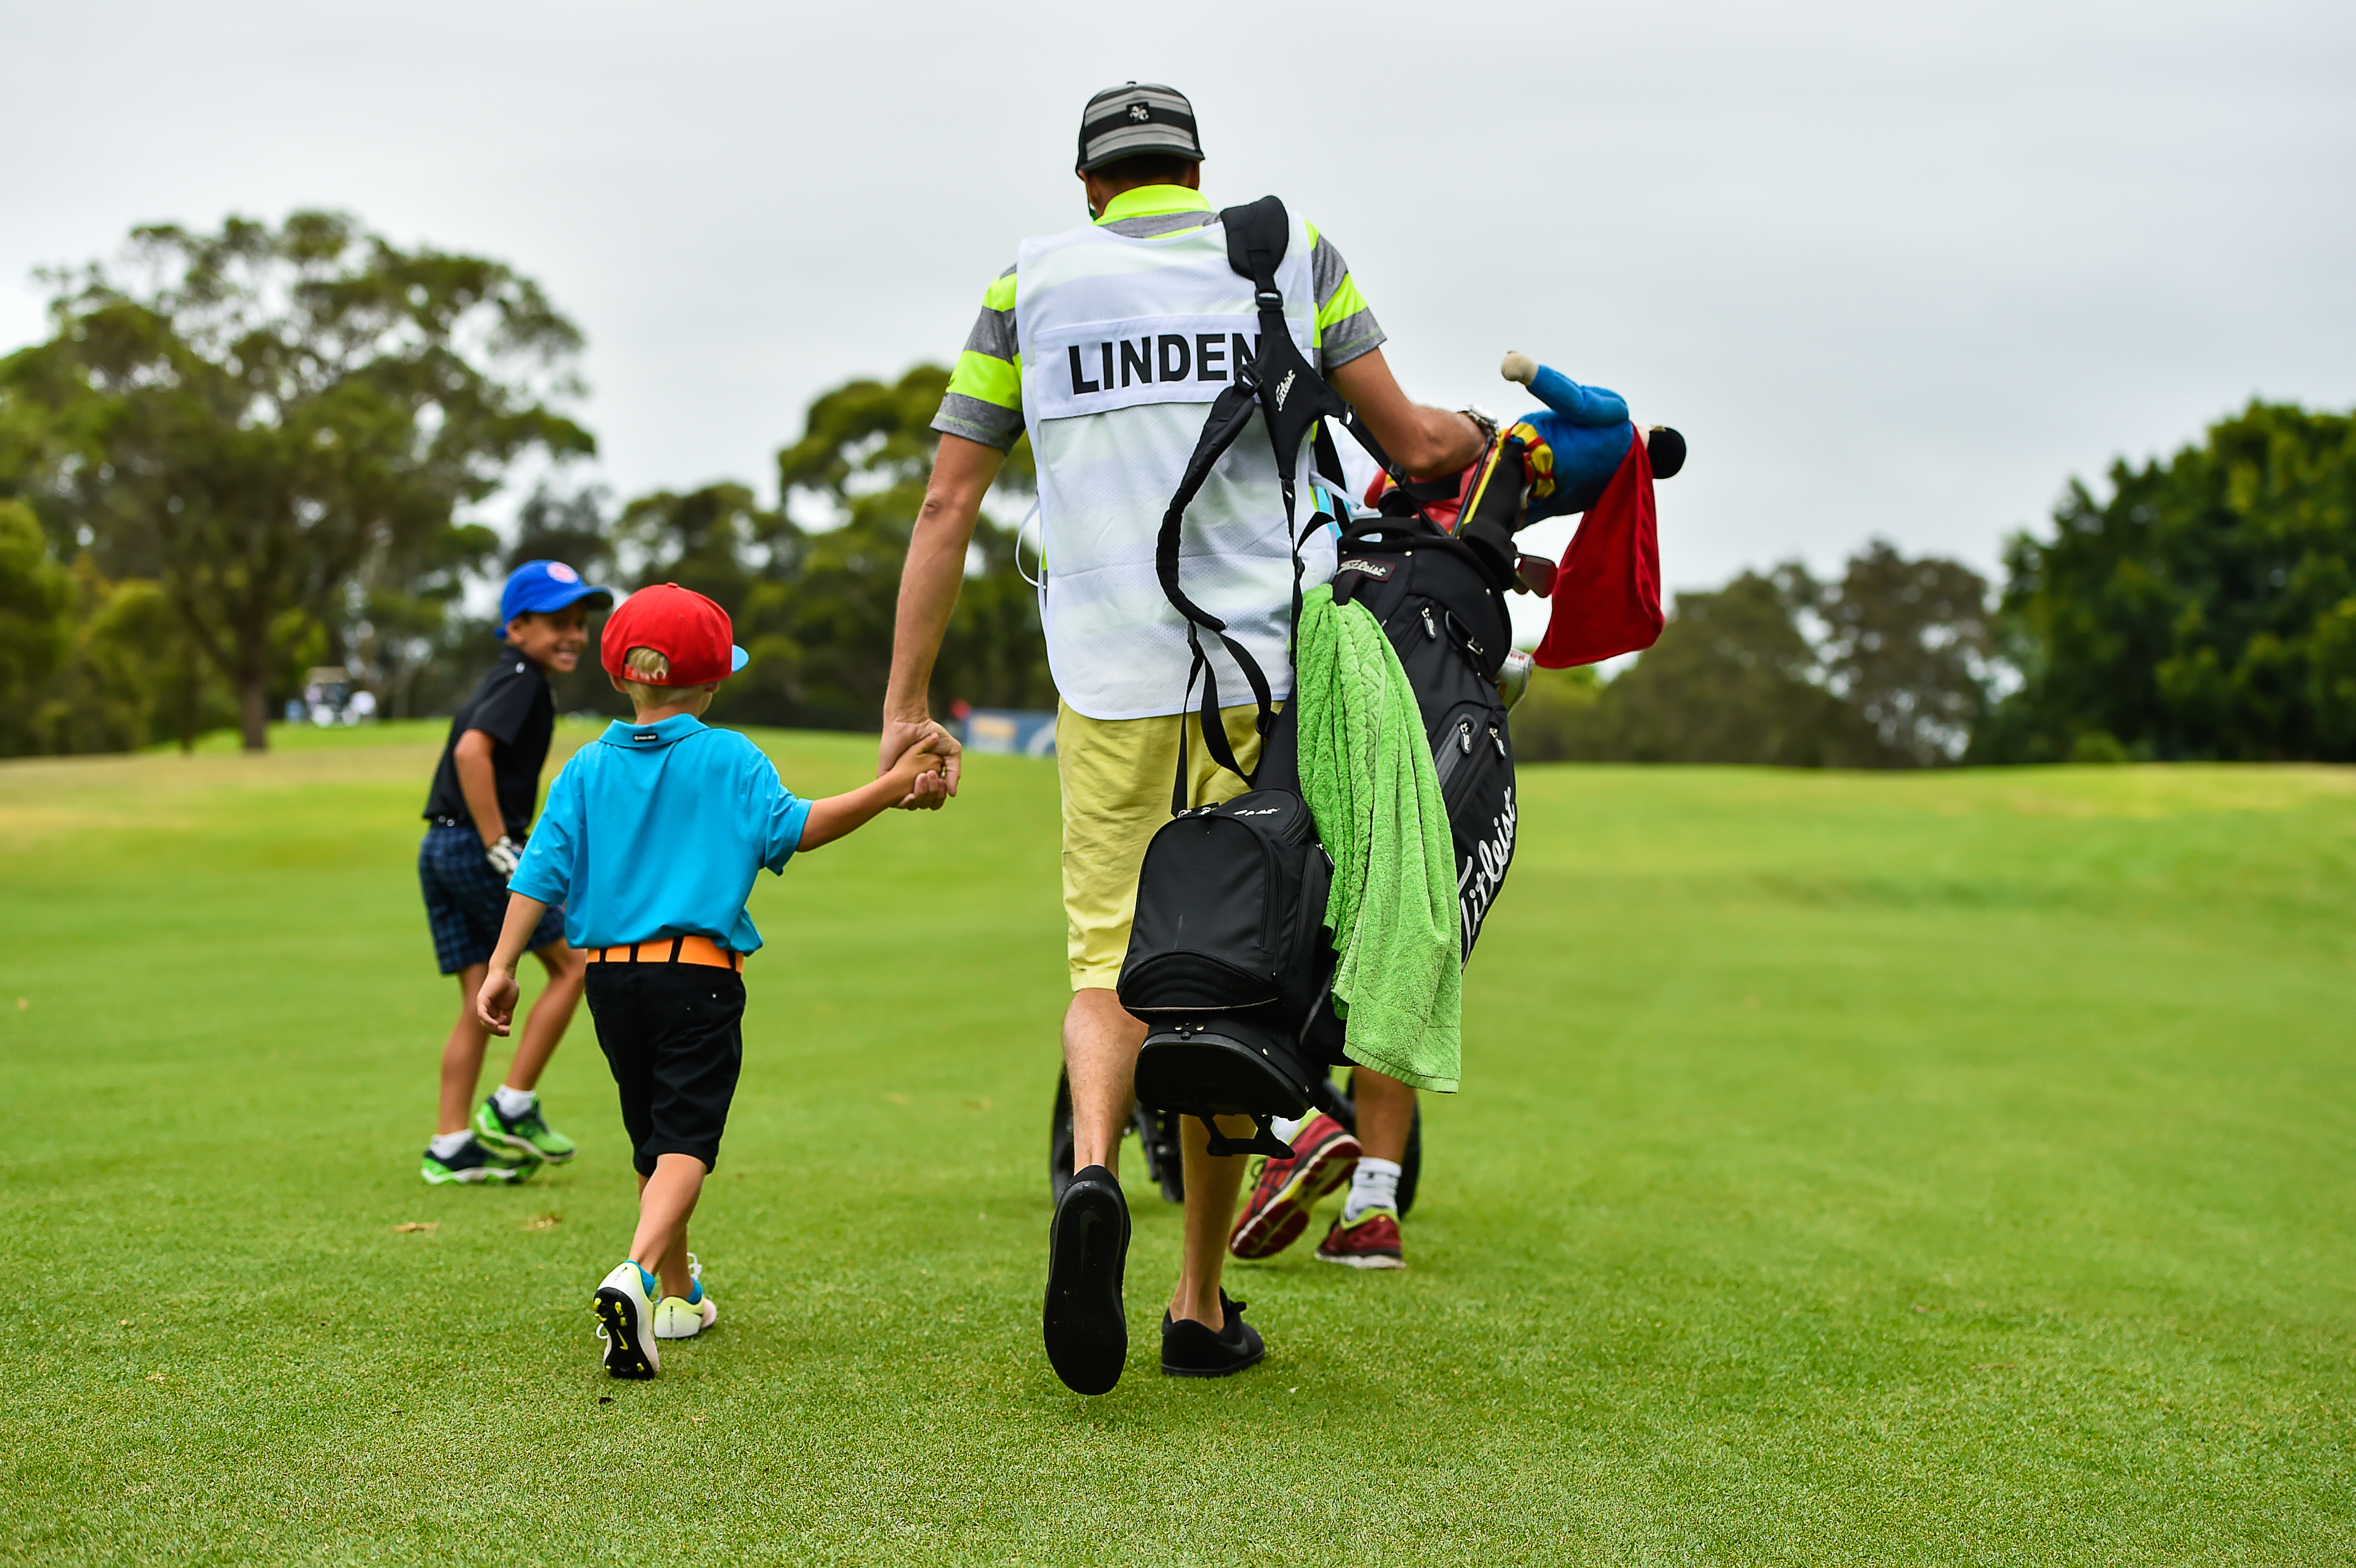 golf tournaments for kids